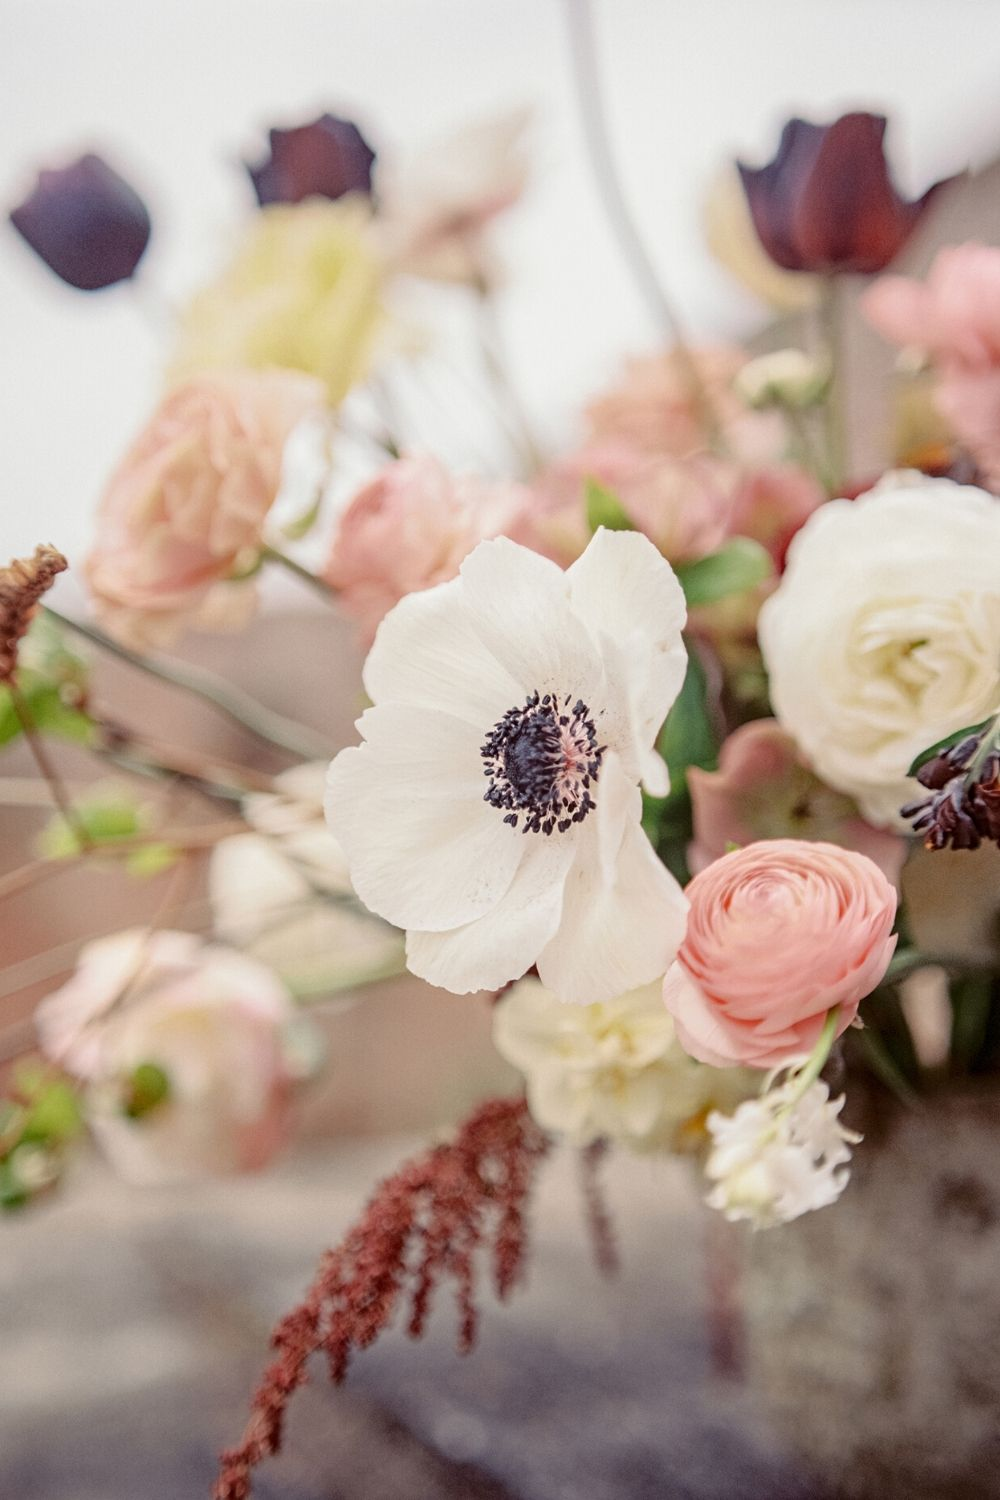 Light floral wedding inspiration with white anemones